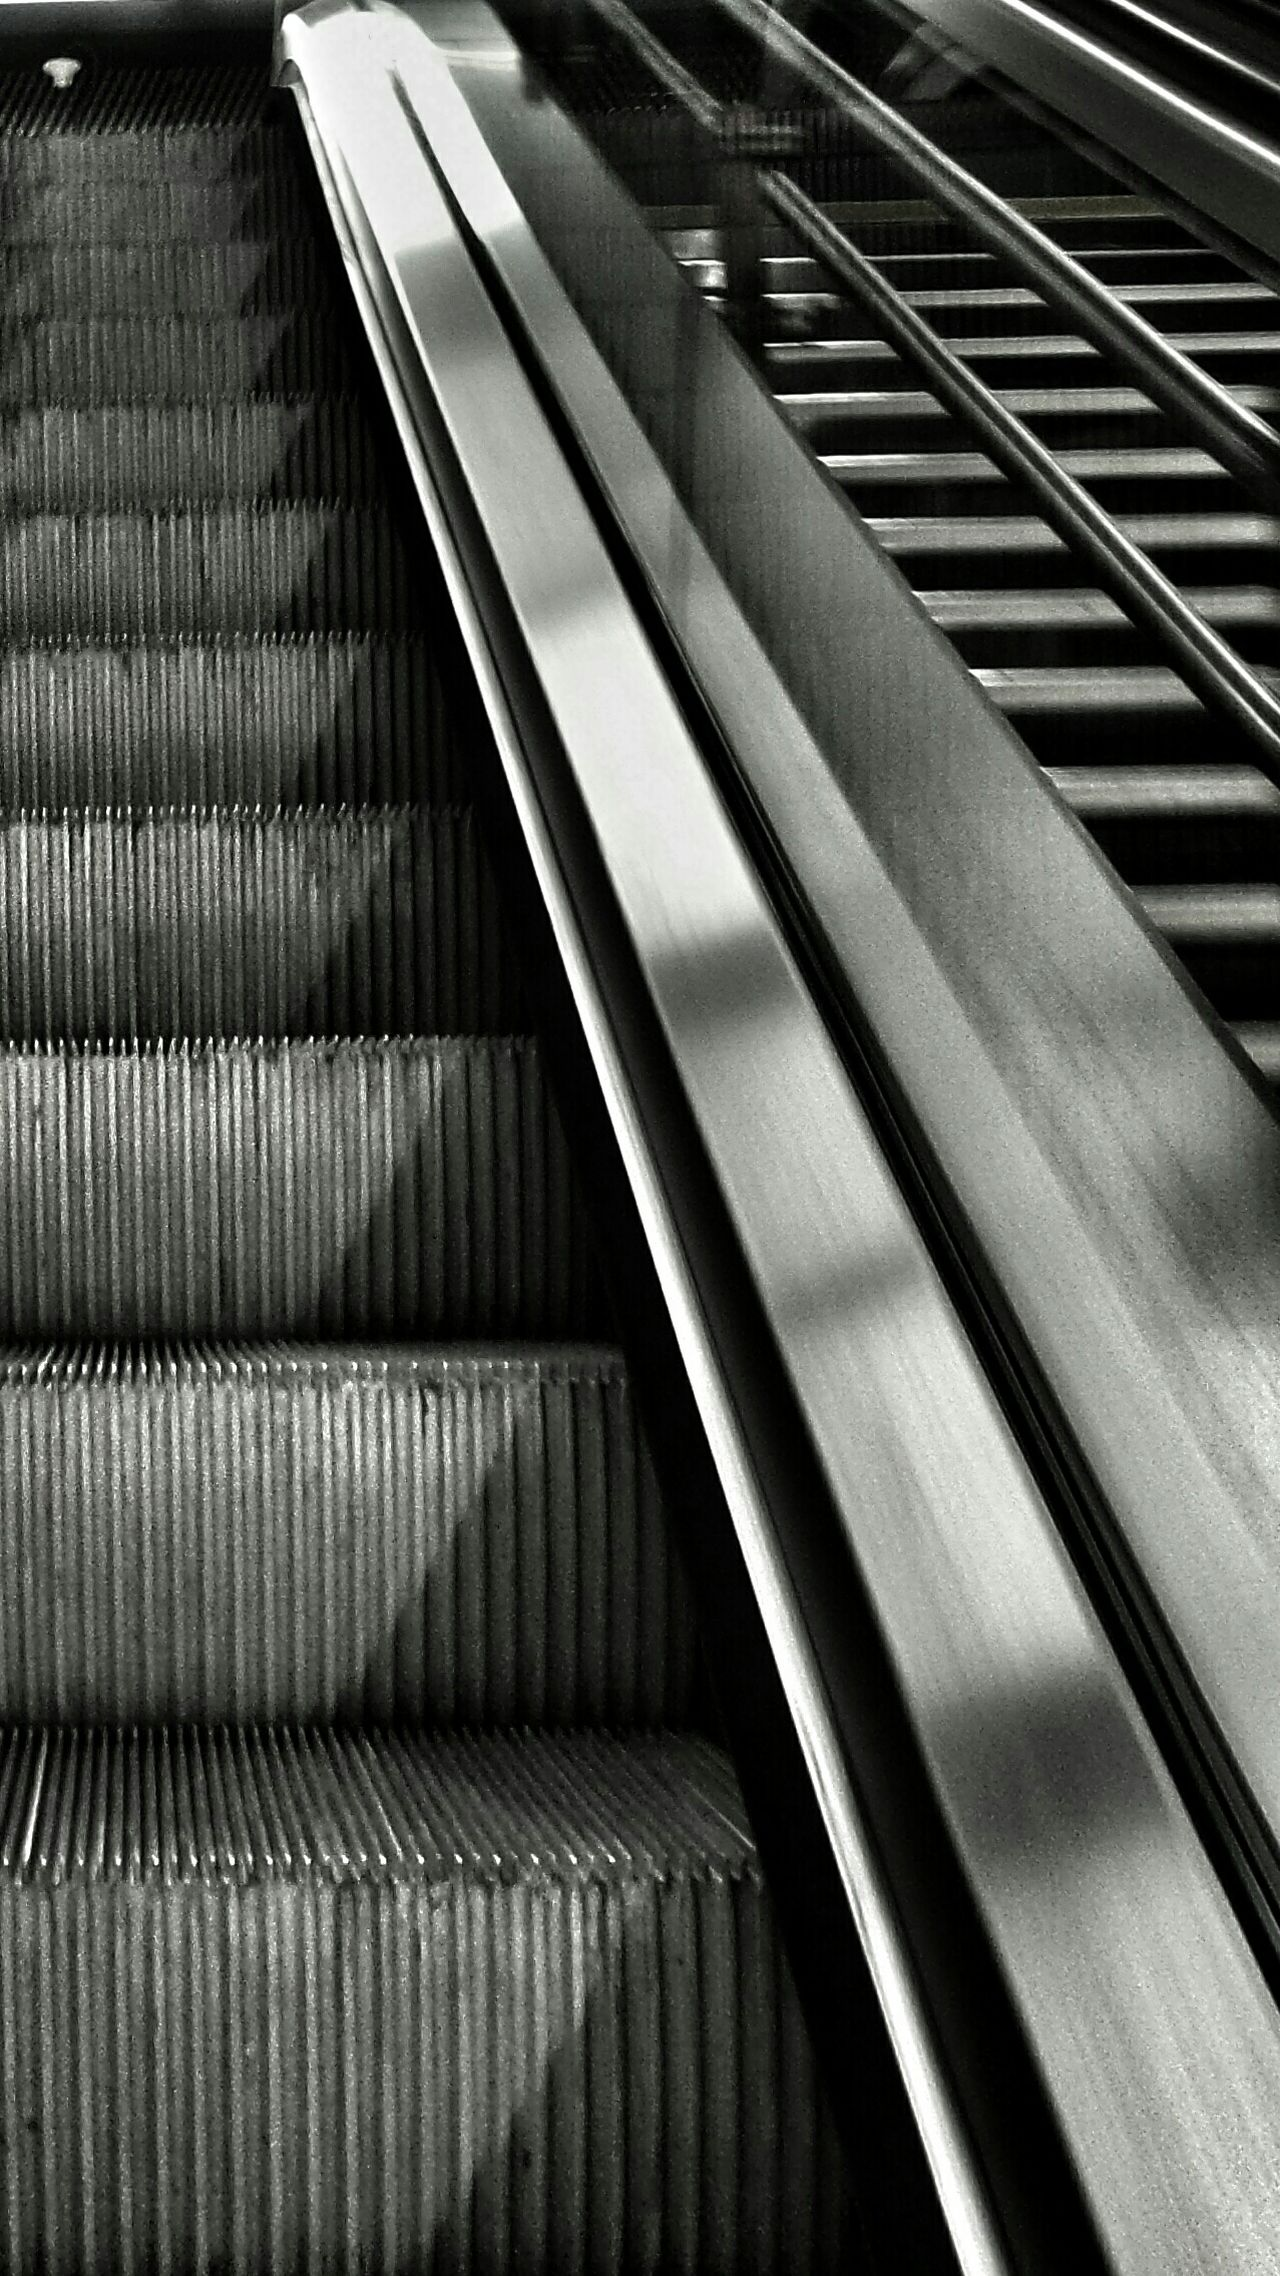 Up 👆 Bnw_friday_eyeemchallenge Escalator Notes From The Underground Urban Geometry Black And White Monochrome